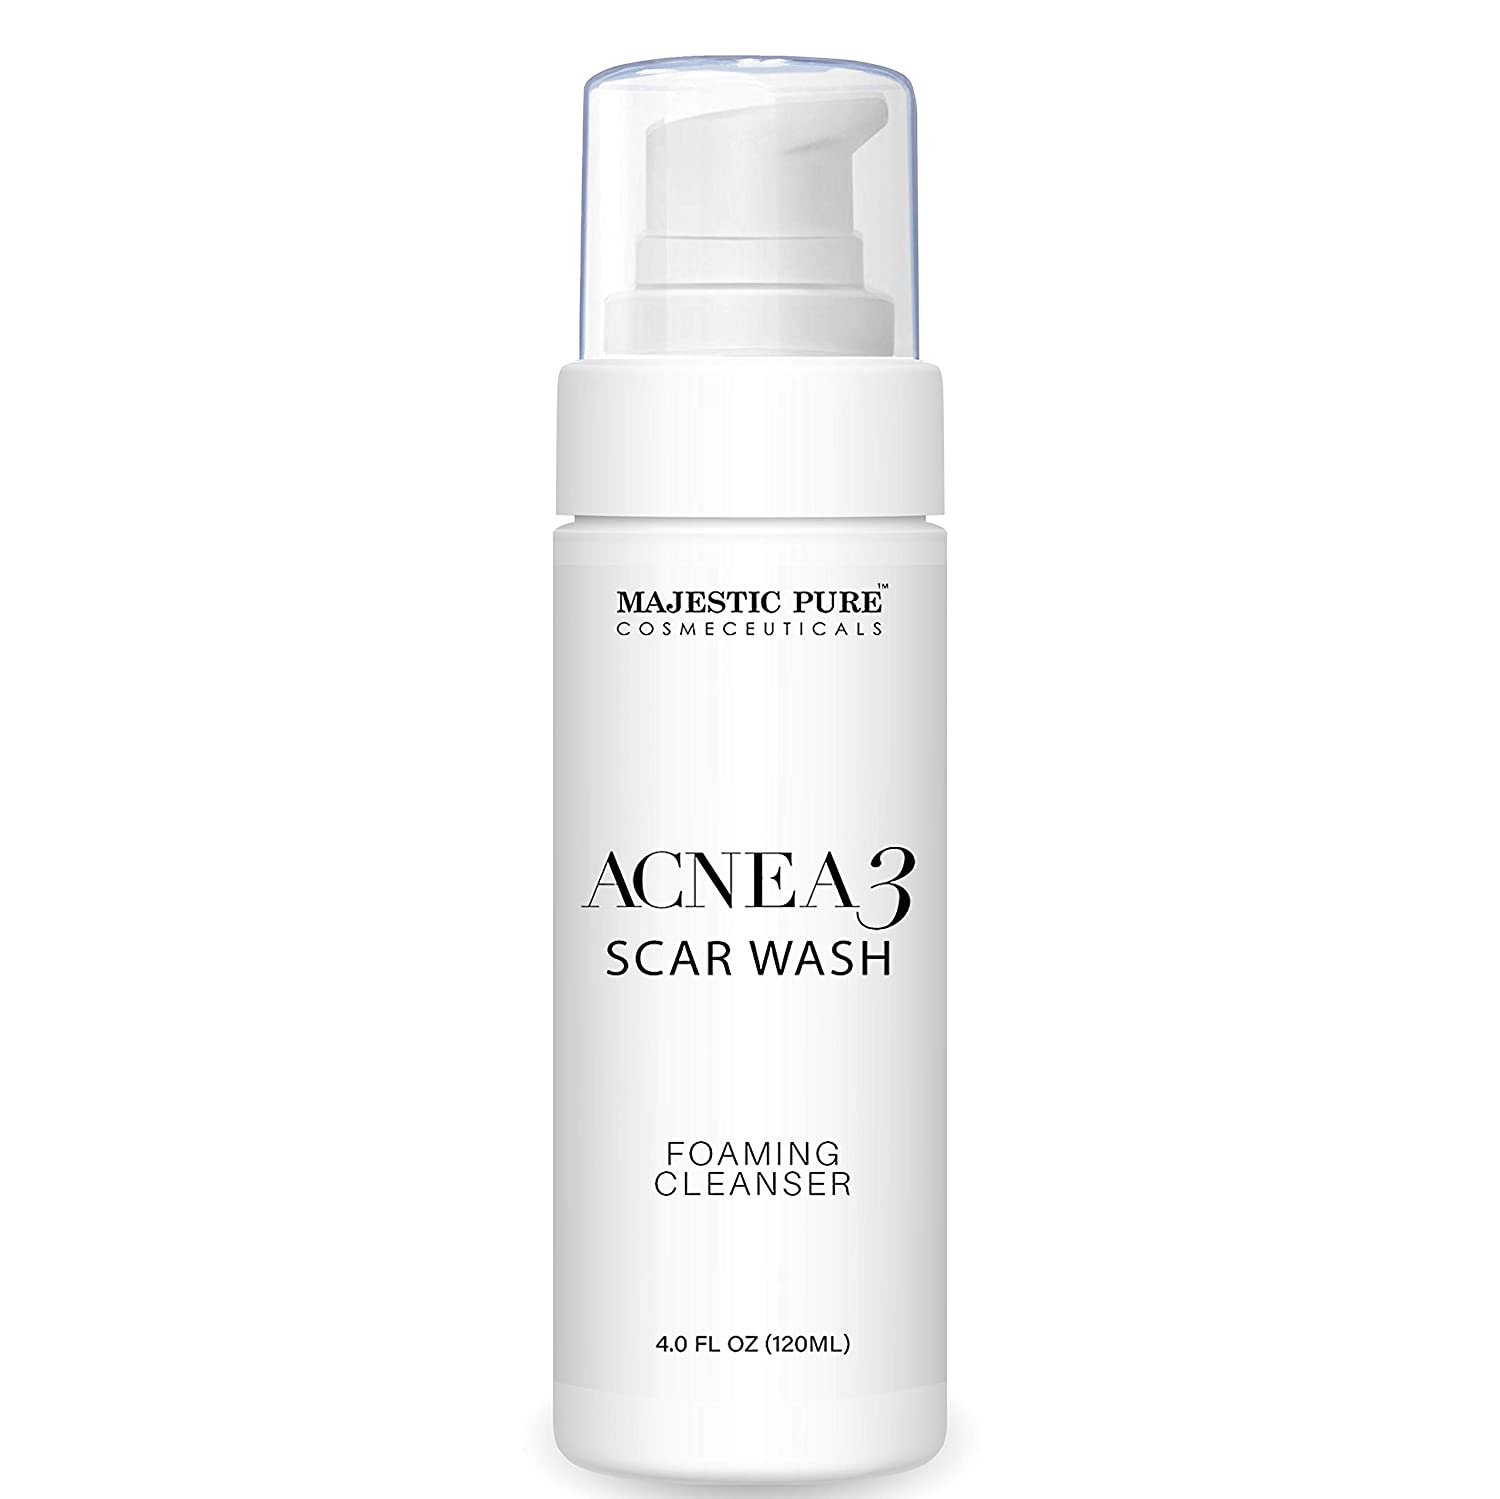 MAJESTIC PURE Acnea3 Scar Acne Wash Foaming Facial Cleanser - Soothes Blemishes and Clears Pores, Made with Pure Peppermint and Tea Tree Essential Oils - for All Skin Types, 4 fl oz